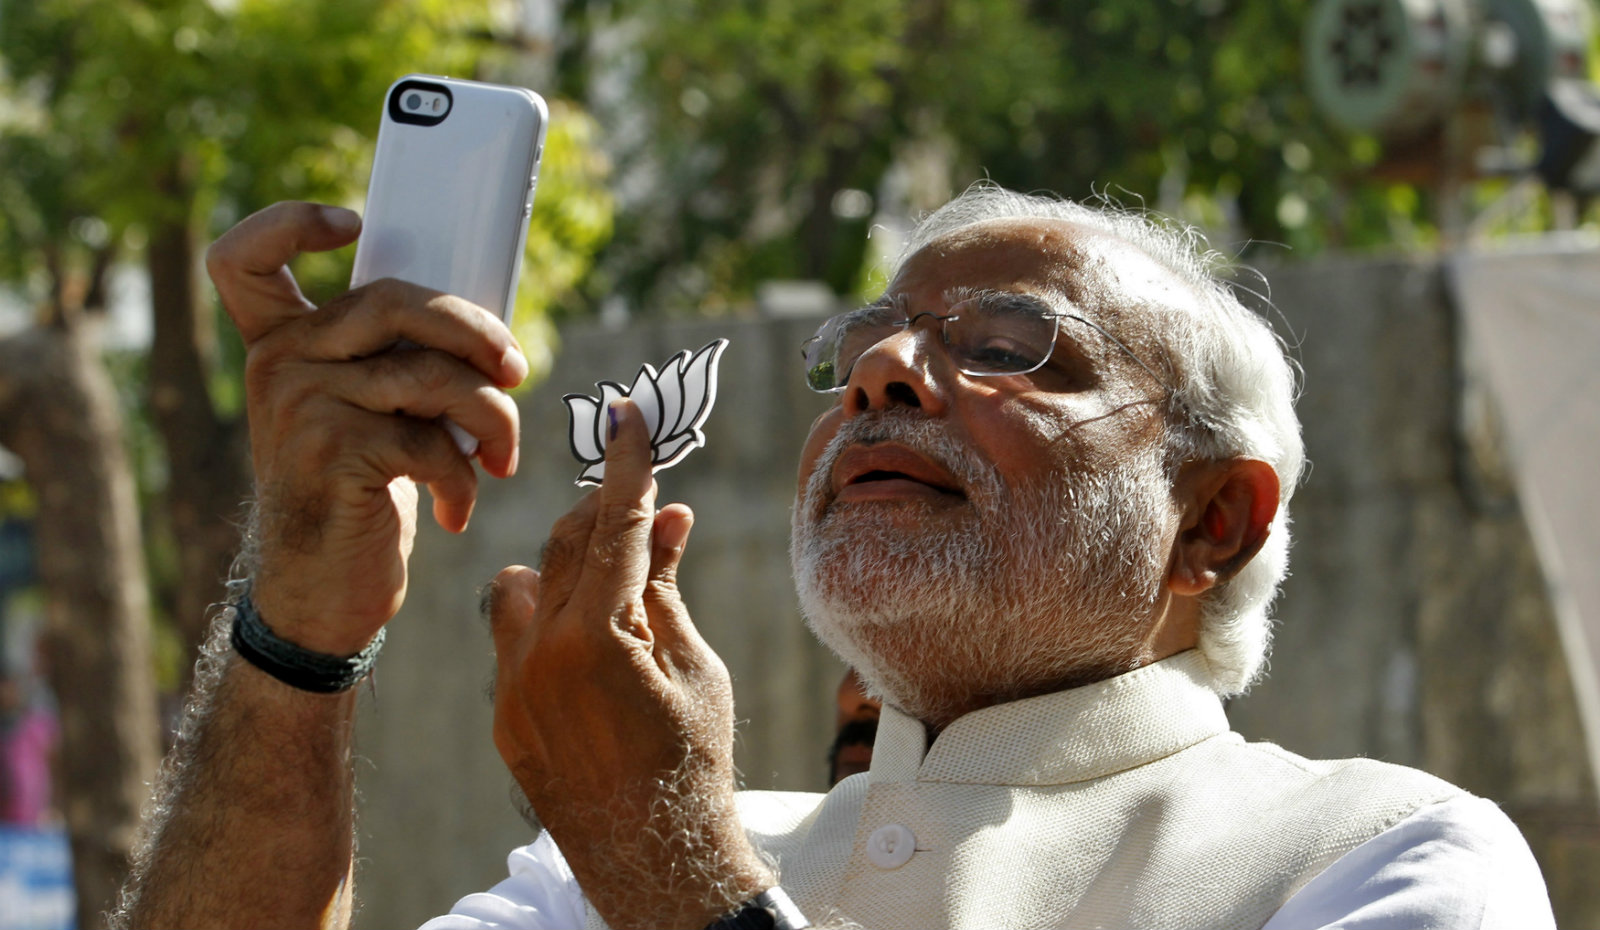 """Hindu nationalist Narendra Modi, the prime ministerial candidate for India's main opposition Bharatiya Janata Party (BJP), takes a """"selfie"""" with a mobile phone after casting his vote at a polling station during the seventh phase of India's general election in the western Indian city of Ahmedabad April 30, 2014. Around 815 million people have registered to vote in the world's biggest election - a number exceeding the population of Europe and a world record - and results of the mammoth exercise, which concludes on May 12, are due on May 16."""